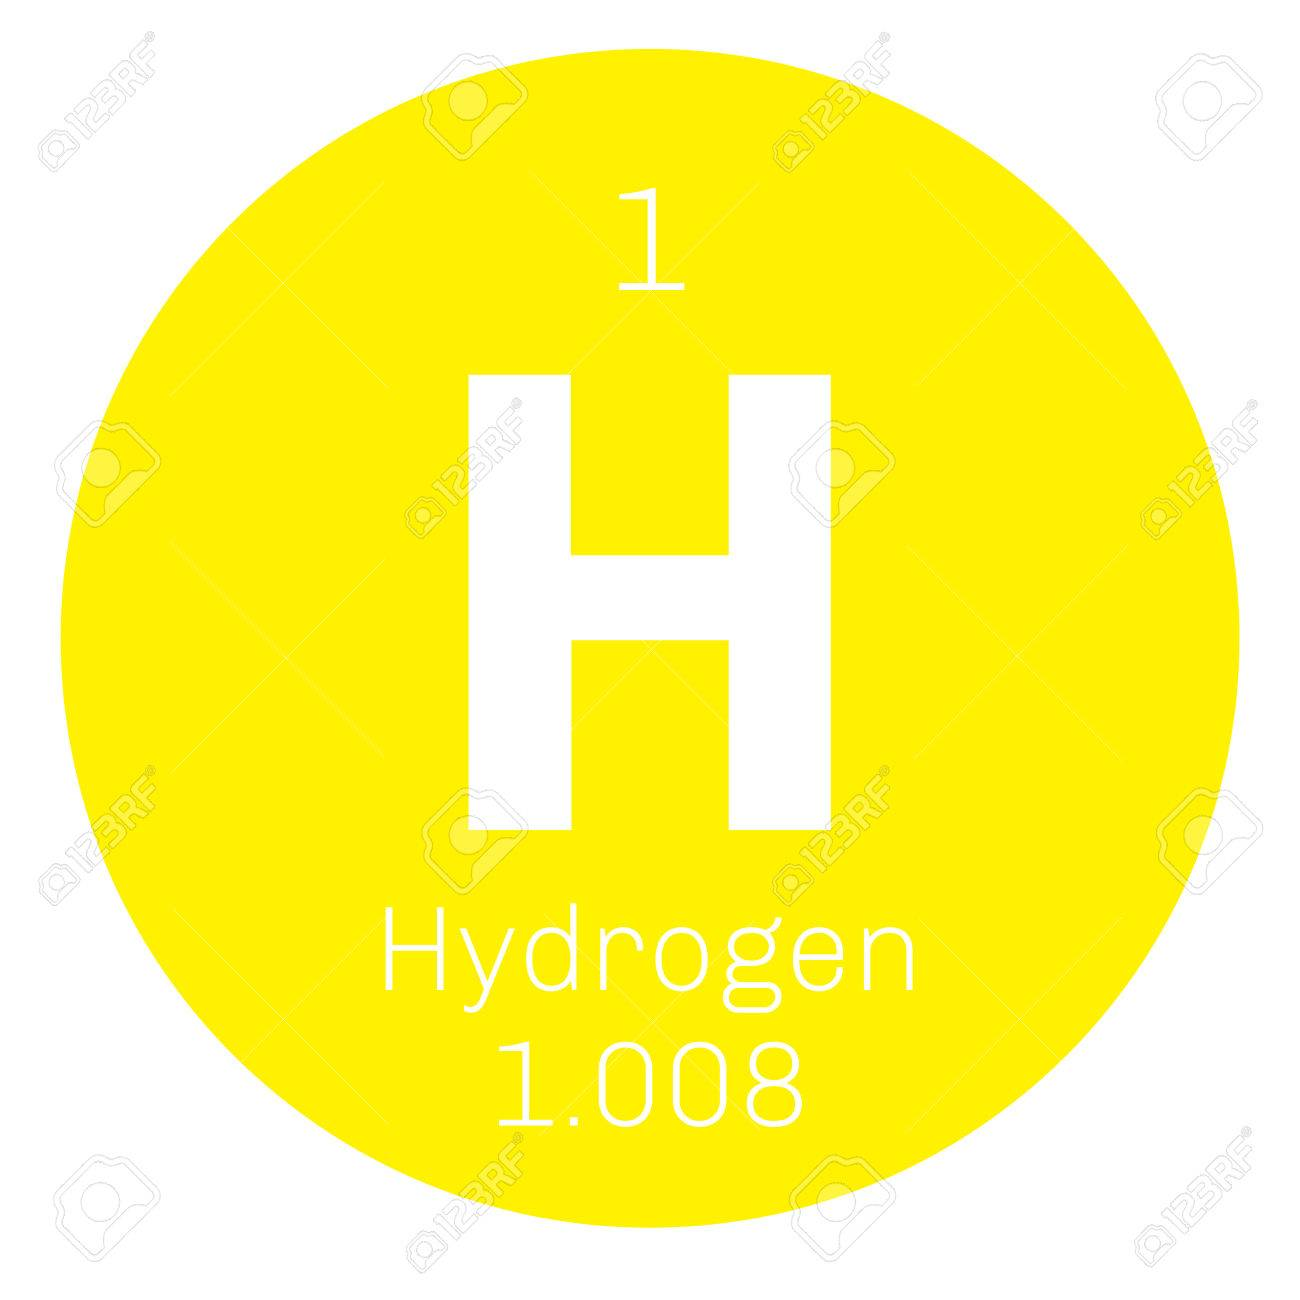 Pn periodic table images periodic table images hydrogen periodic table symbol image collections periodic table hydrogen chemical element the lightest element on the gamestrikefo Images